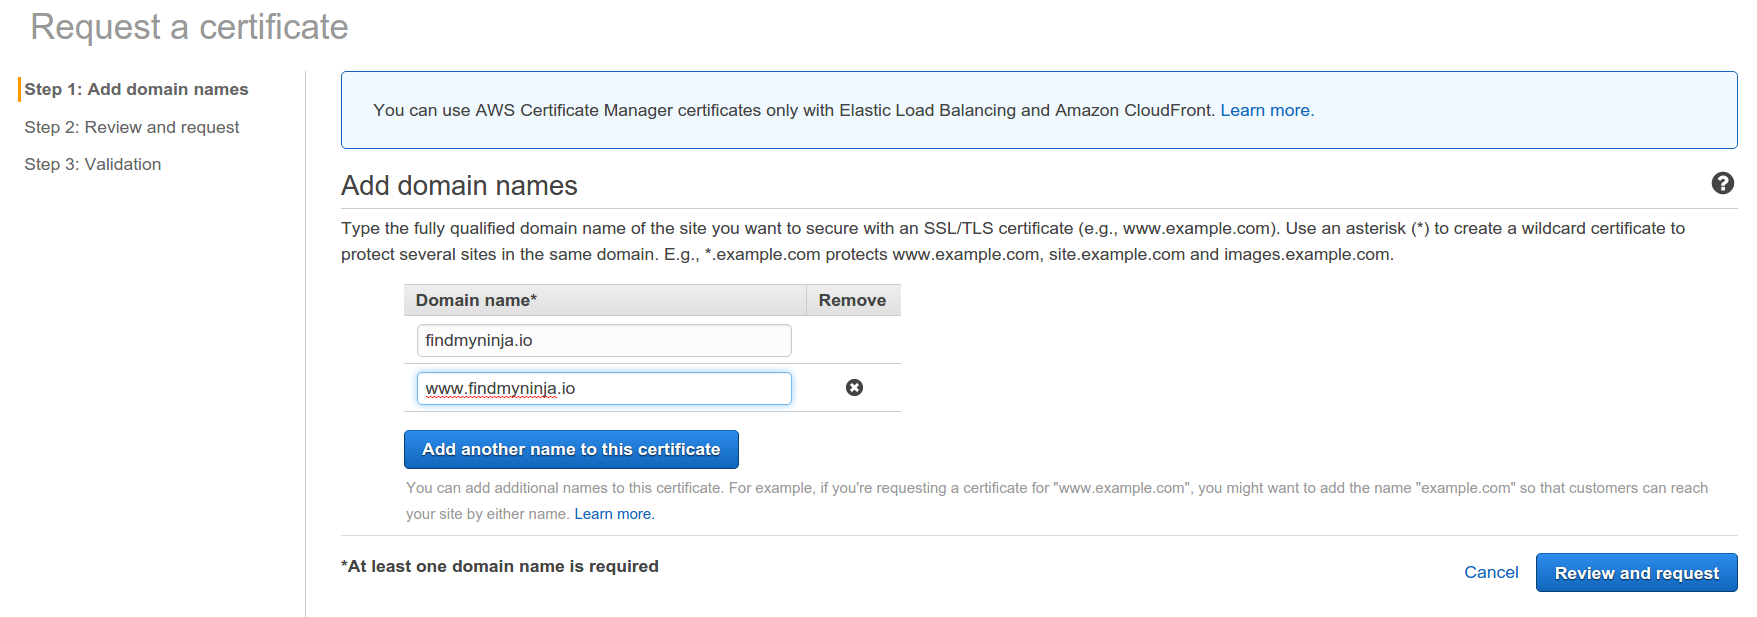 Amazon Certificate Manager Screenshot